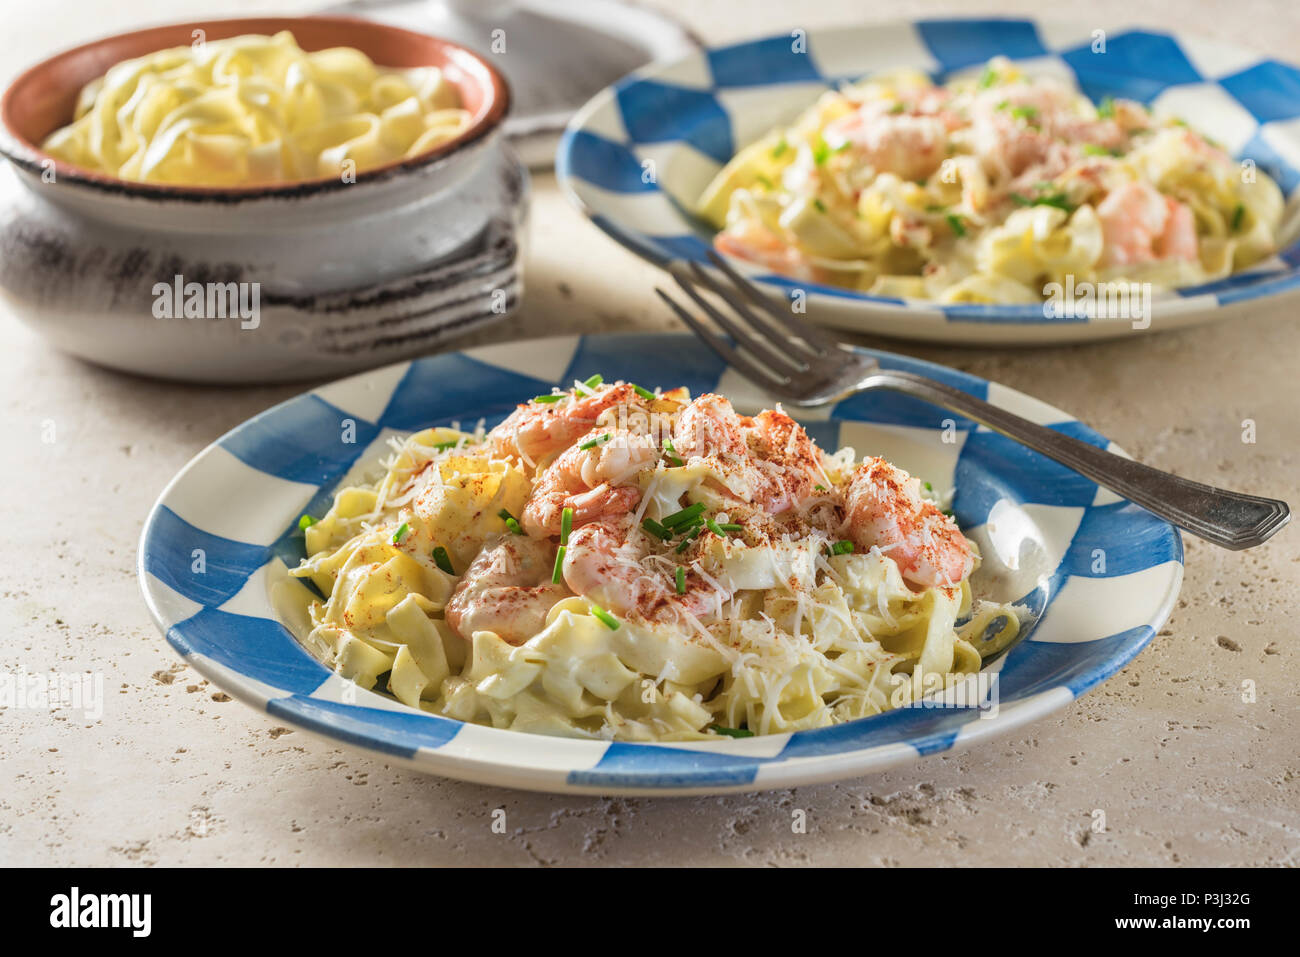 Shrimp Fettuccine Alfredo. Pasta in cheese and butter sauce with prawns. - Stock Image